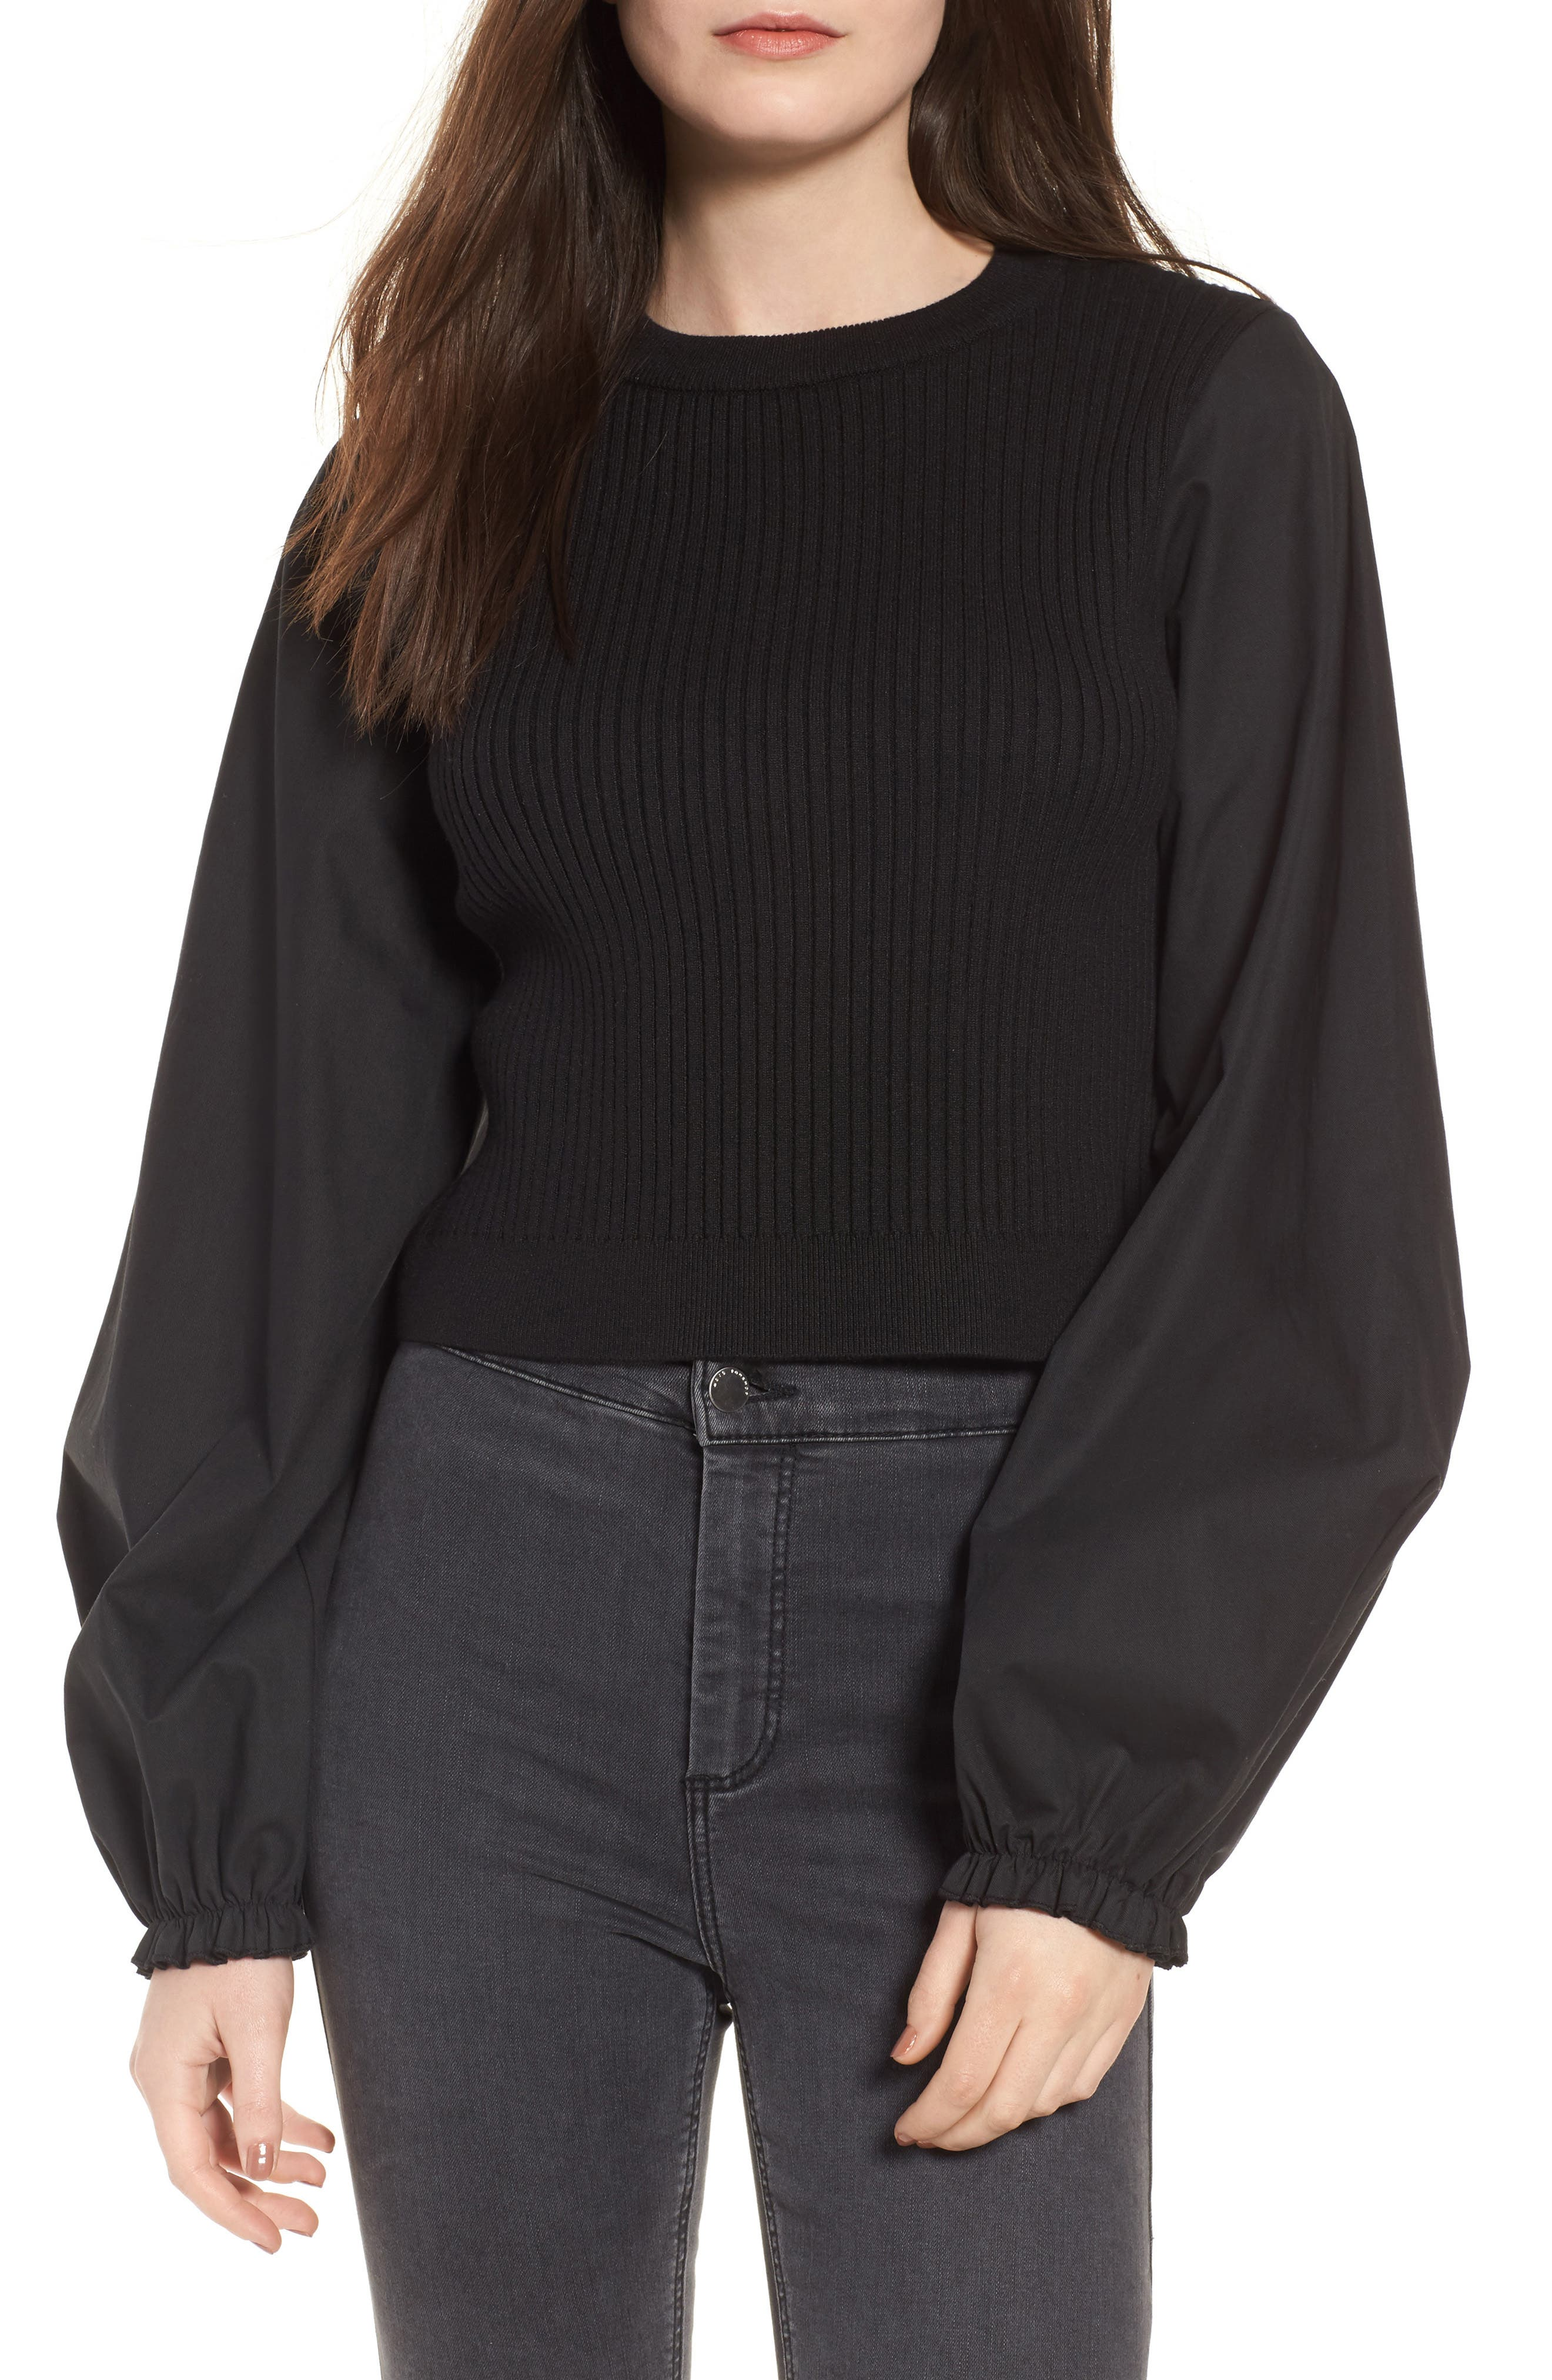 Topshop Mixed Media Puff Sleeve Top